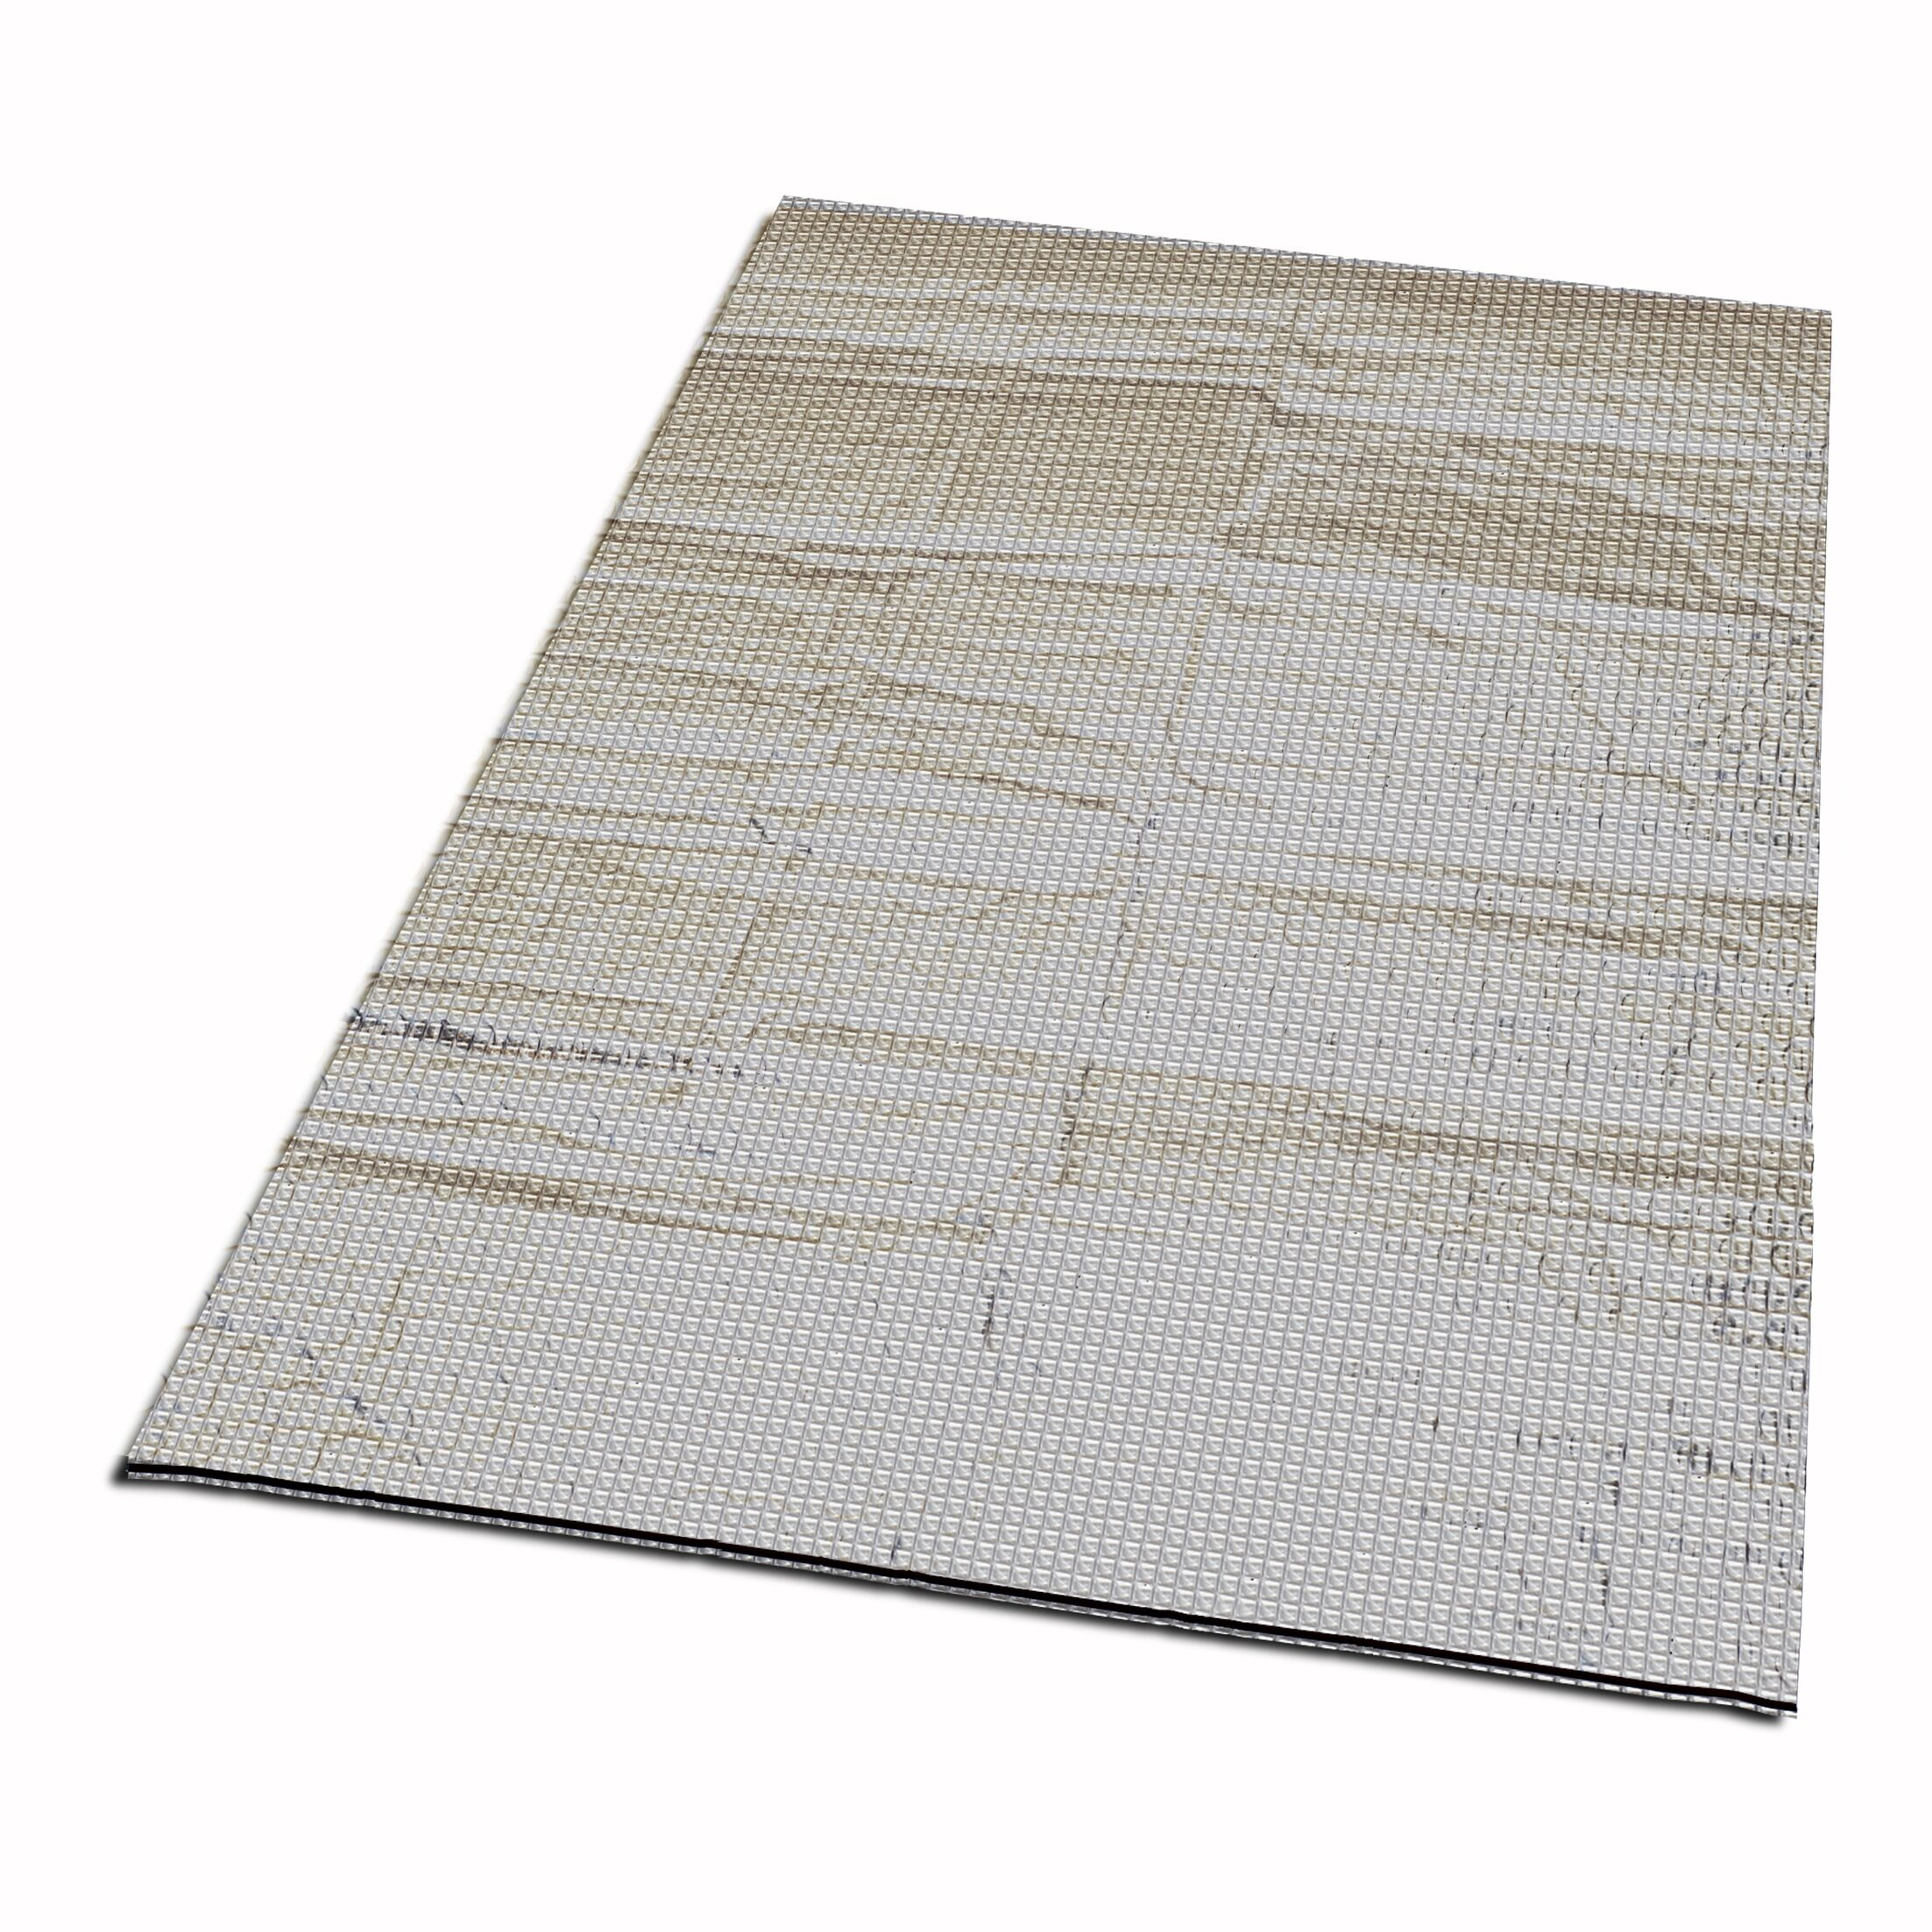 Neil ThermaPup Self-Warming Pad Size: Small (0.13